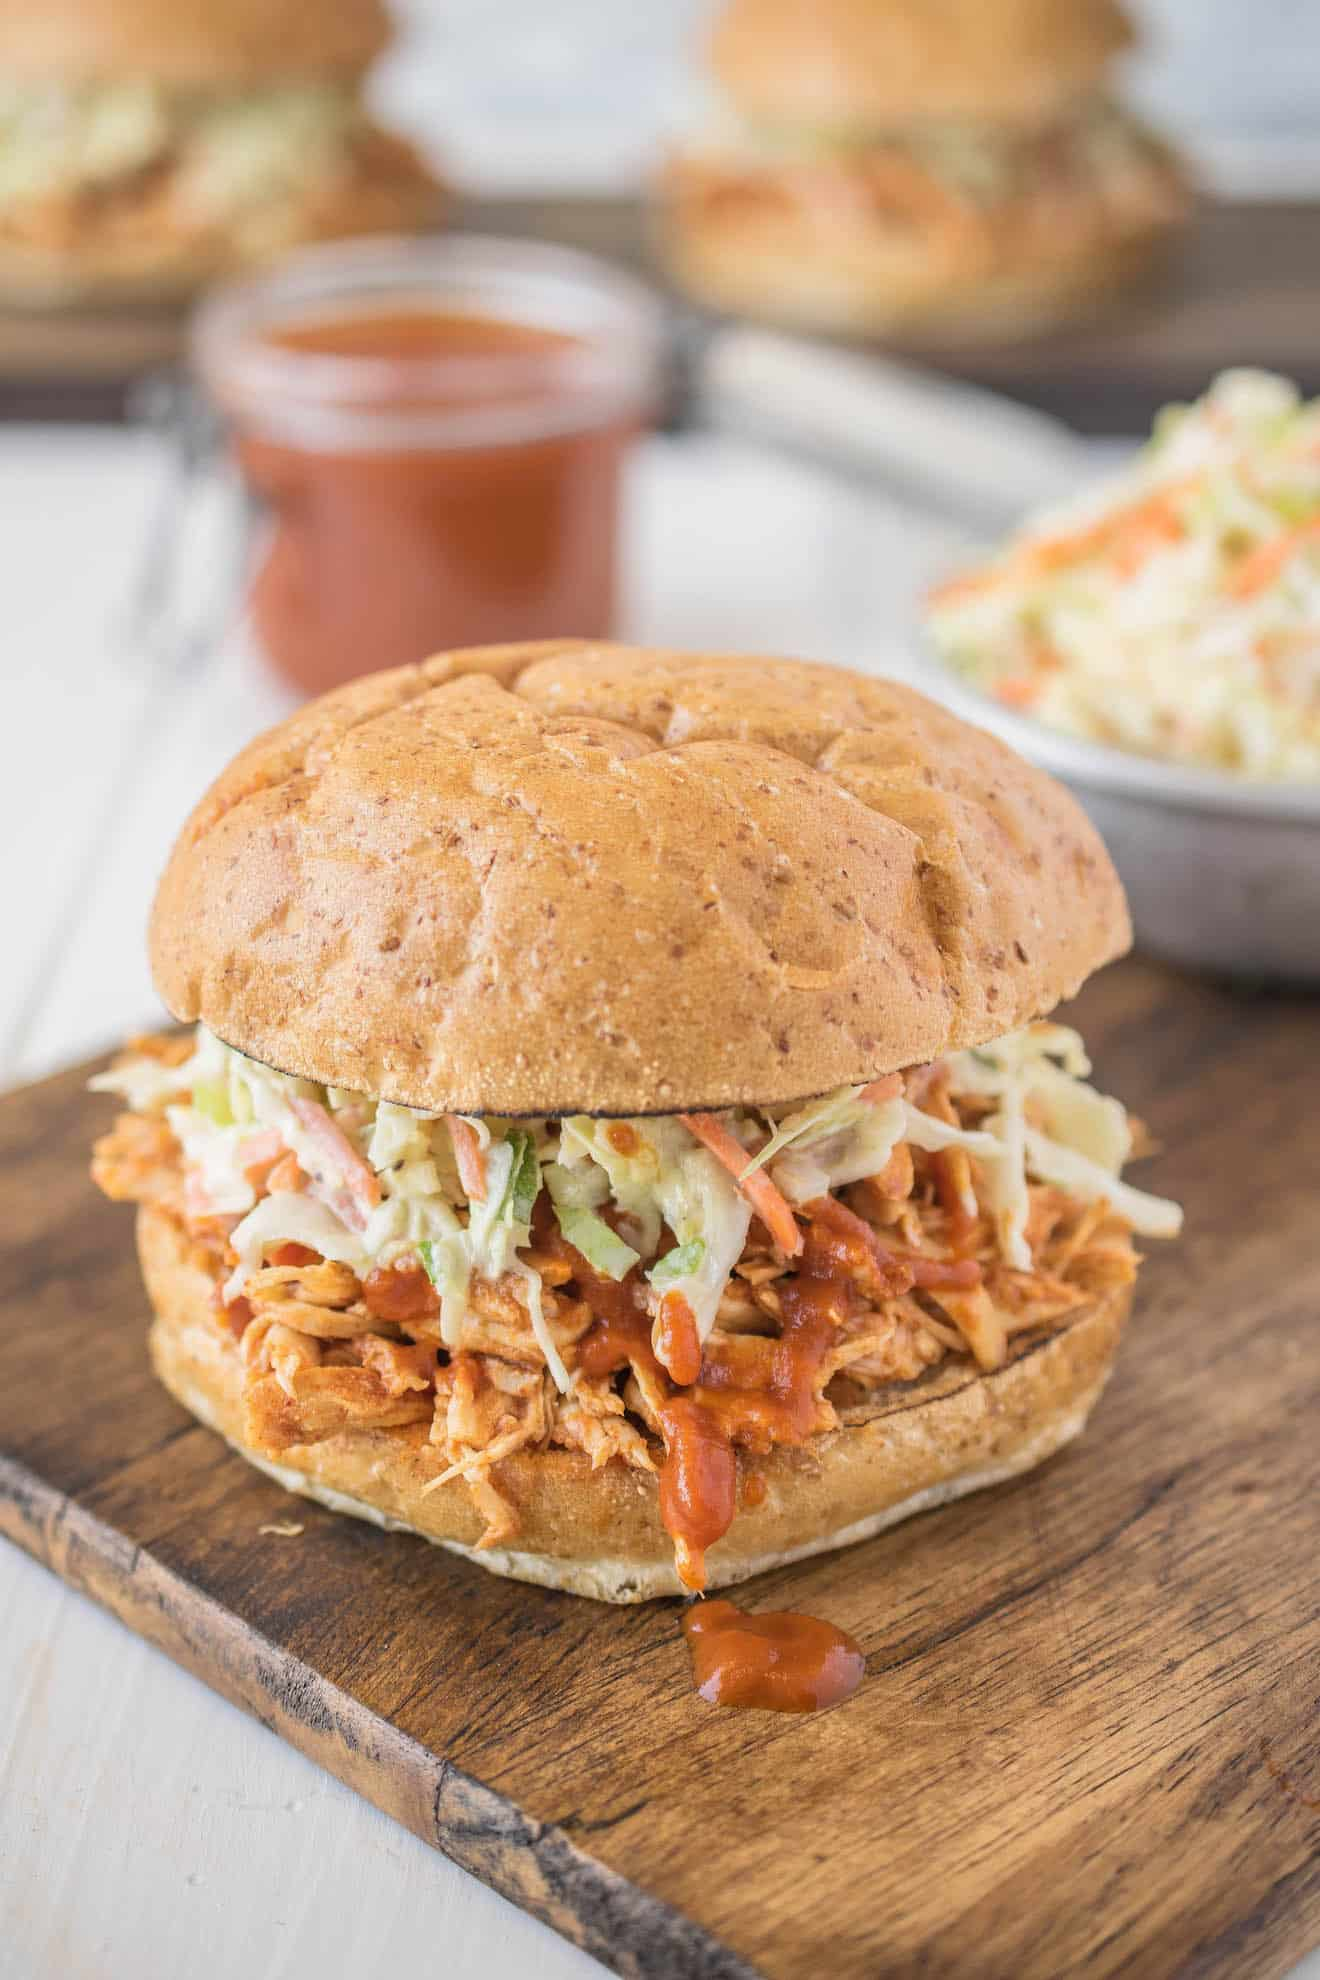 Pulled chicken in a sandwich bun topped with barbecue sauce and coleslaw